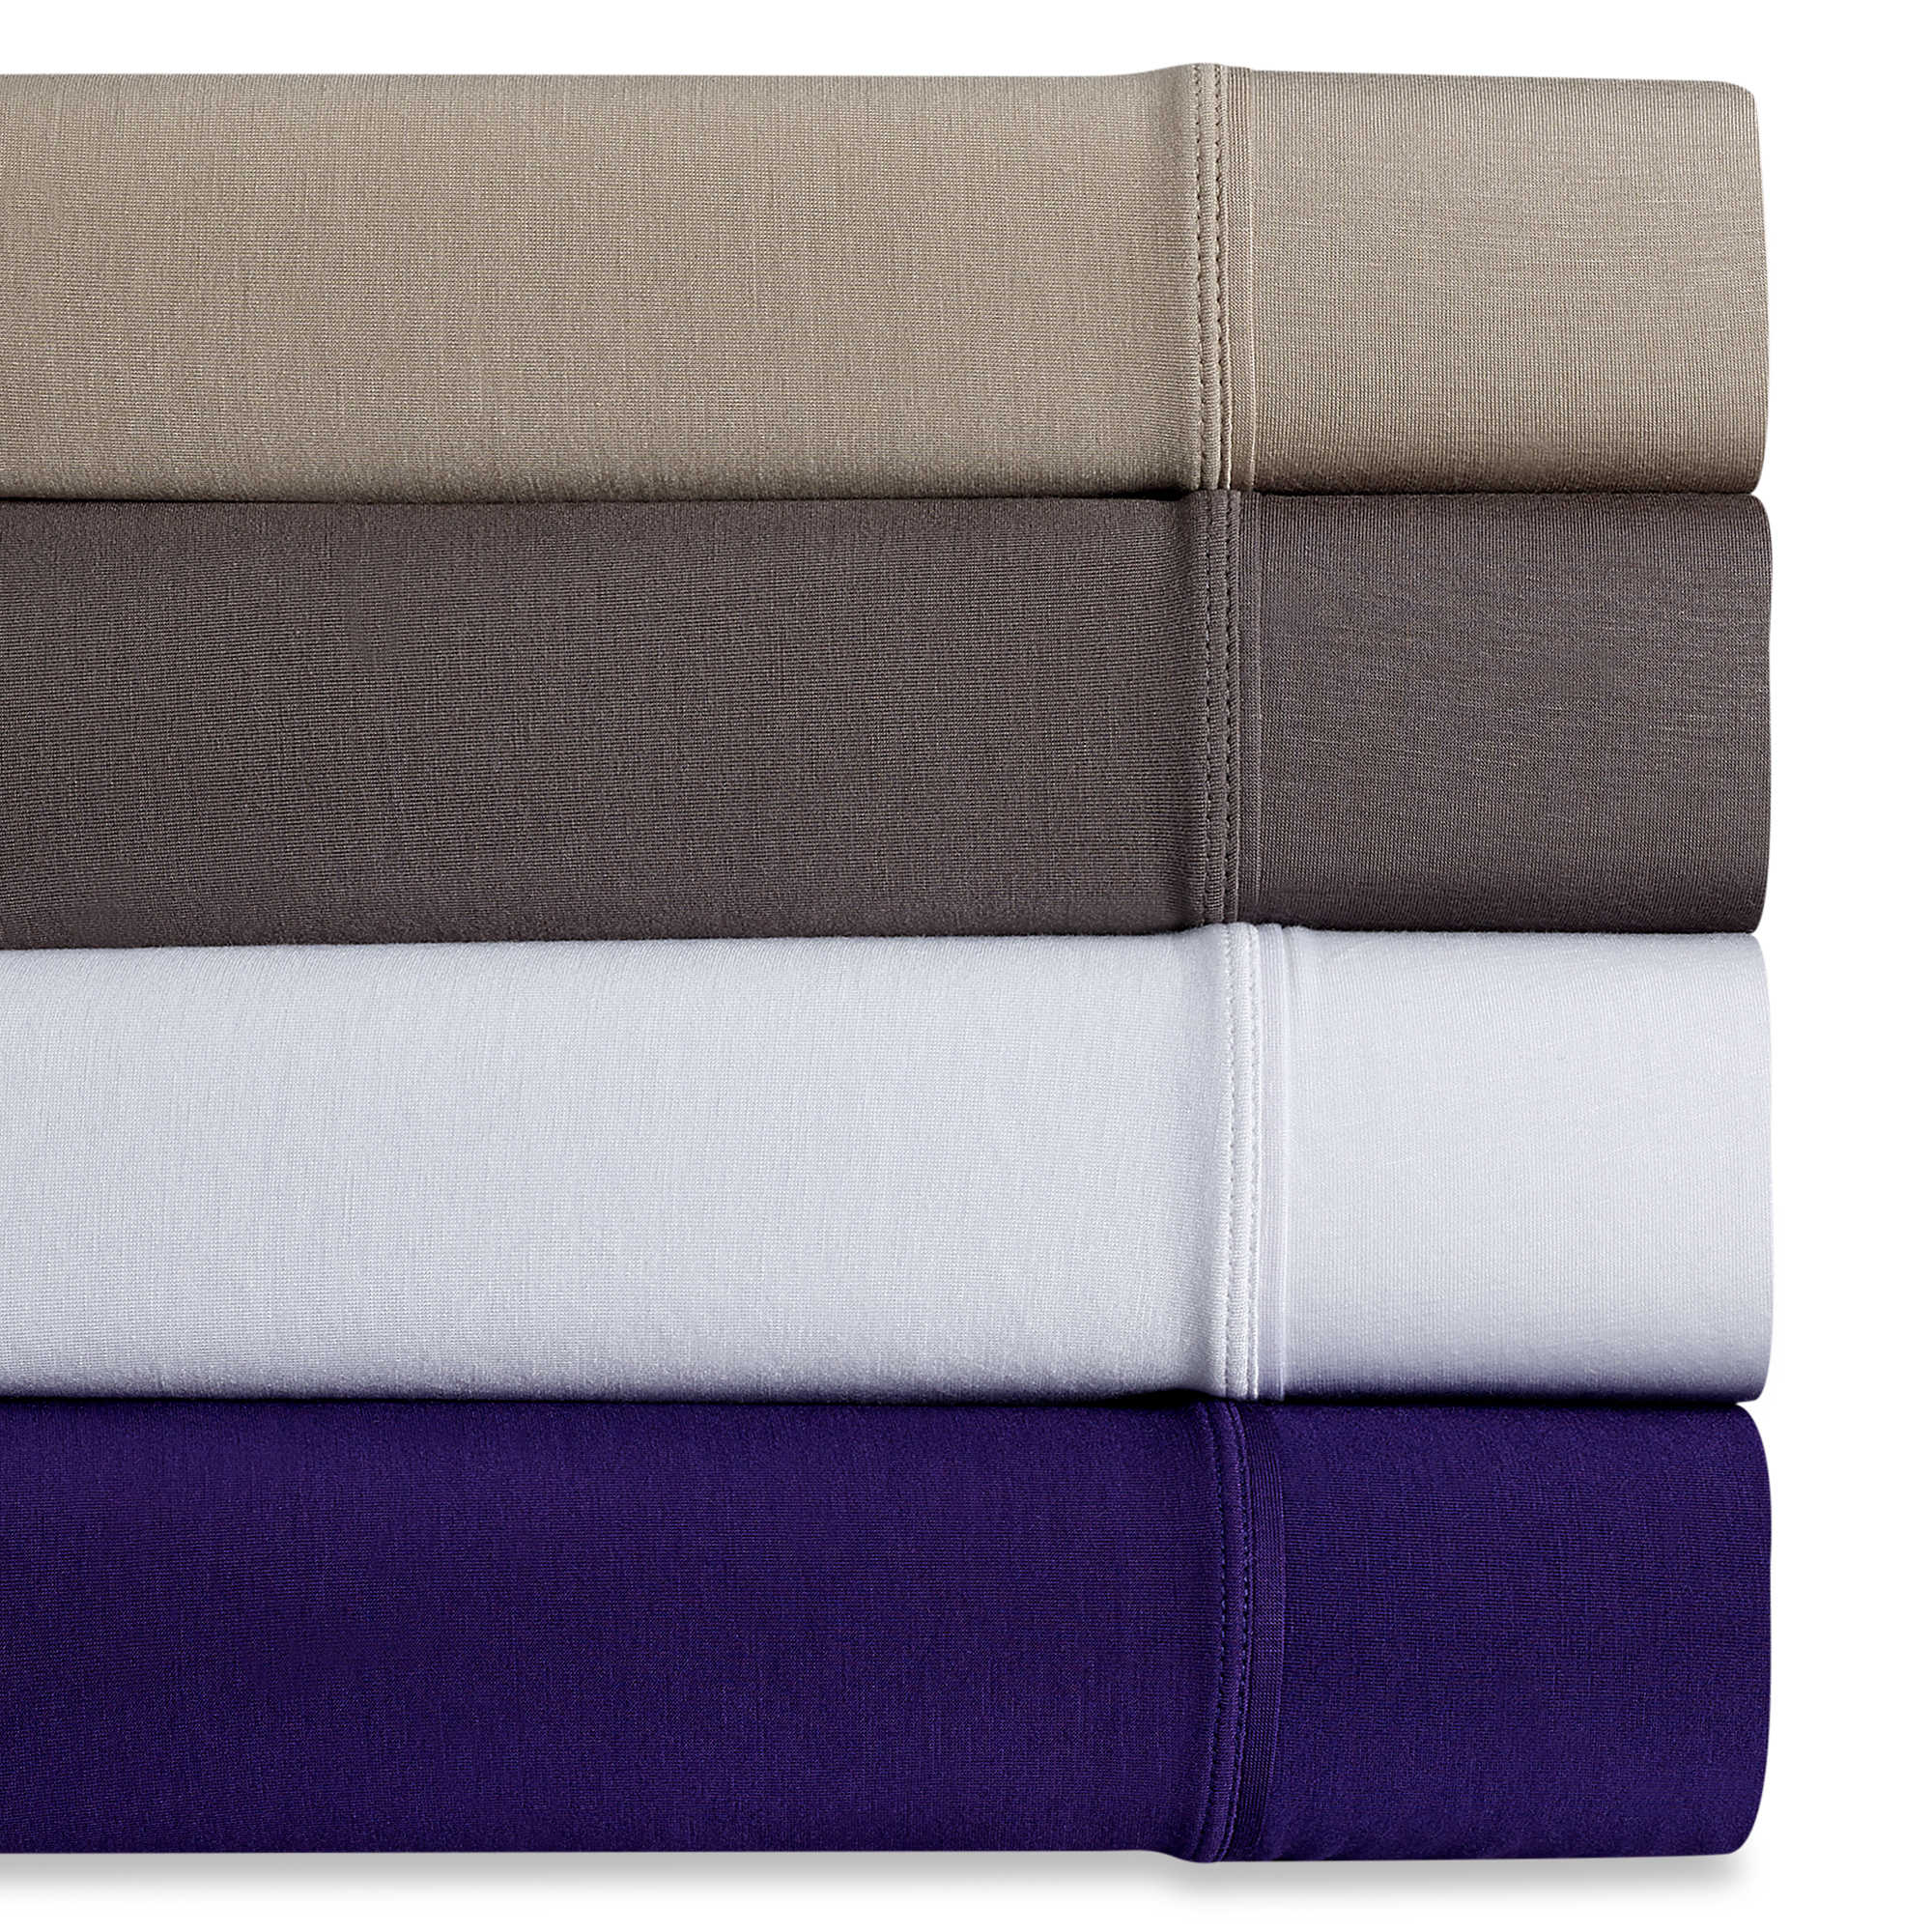 best sheets pillows bedding for better skin complexion purple solid viscose made from bamboo sheet set